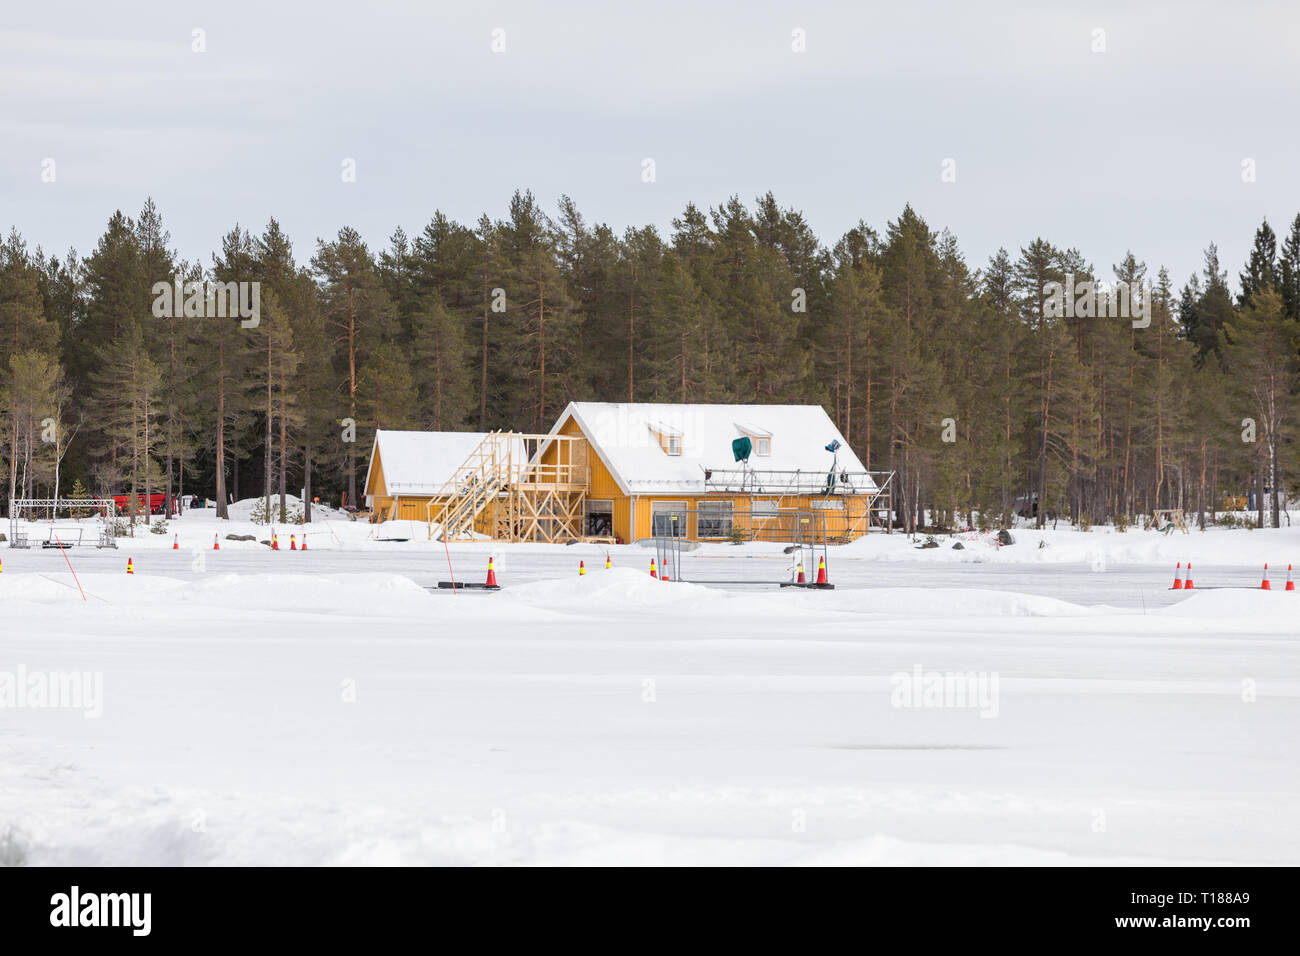 hakadal-norway-24th-march-2019-final-preparations-taking-place-ready-to-start-filming-the-25th-james-bond-film-in-the-forest-north-of-oslo-norway-credit-paul-smithalamy-live-news-T188A9.jpg